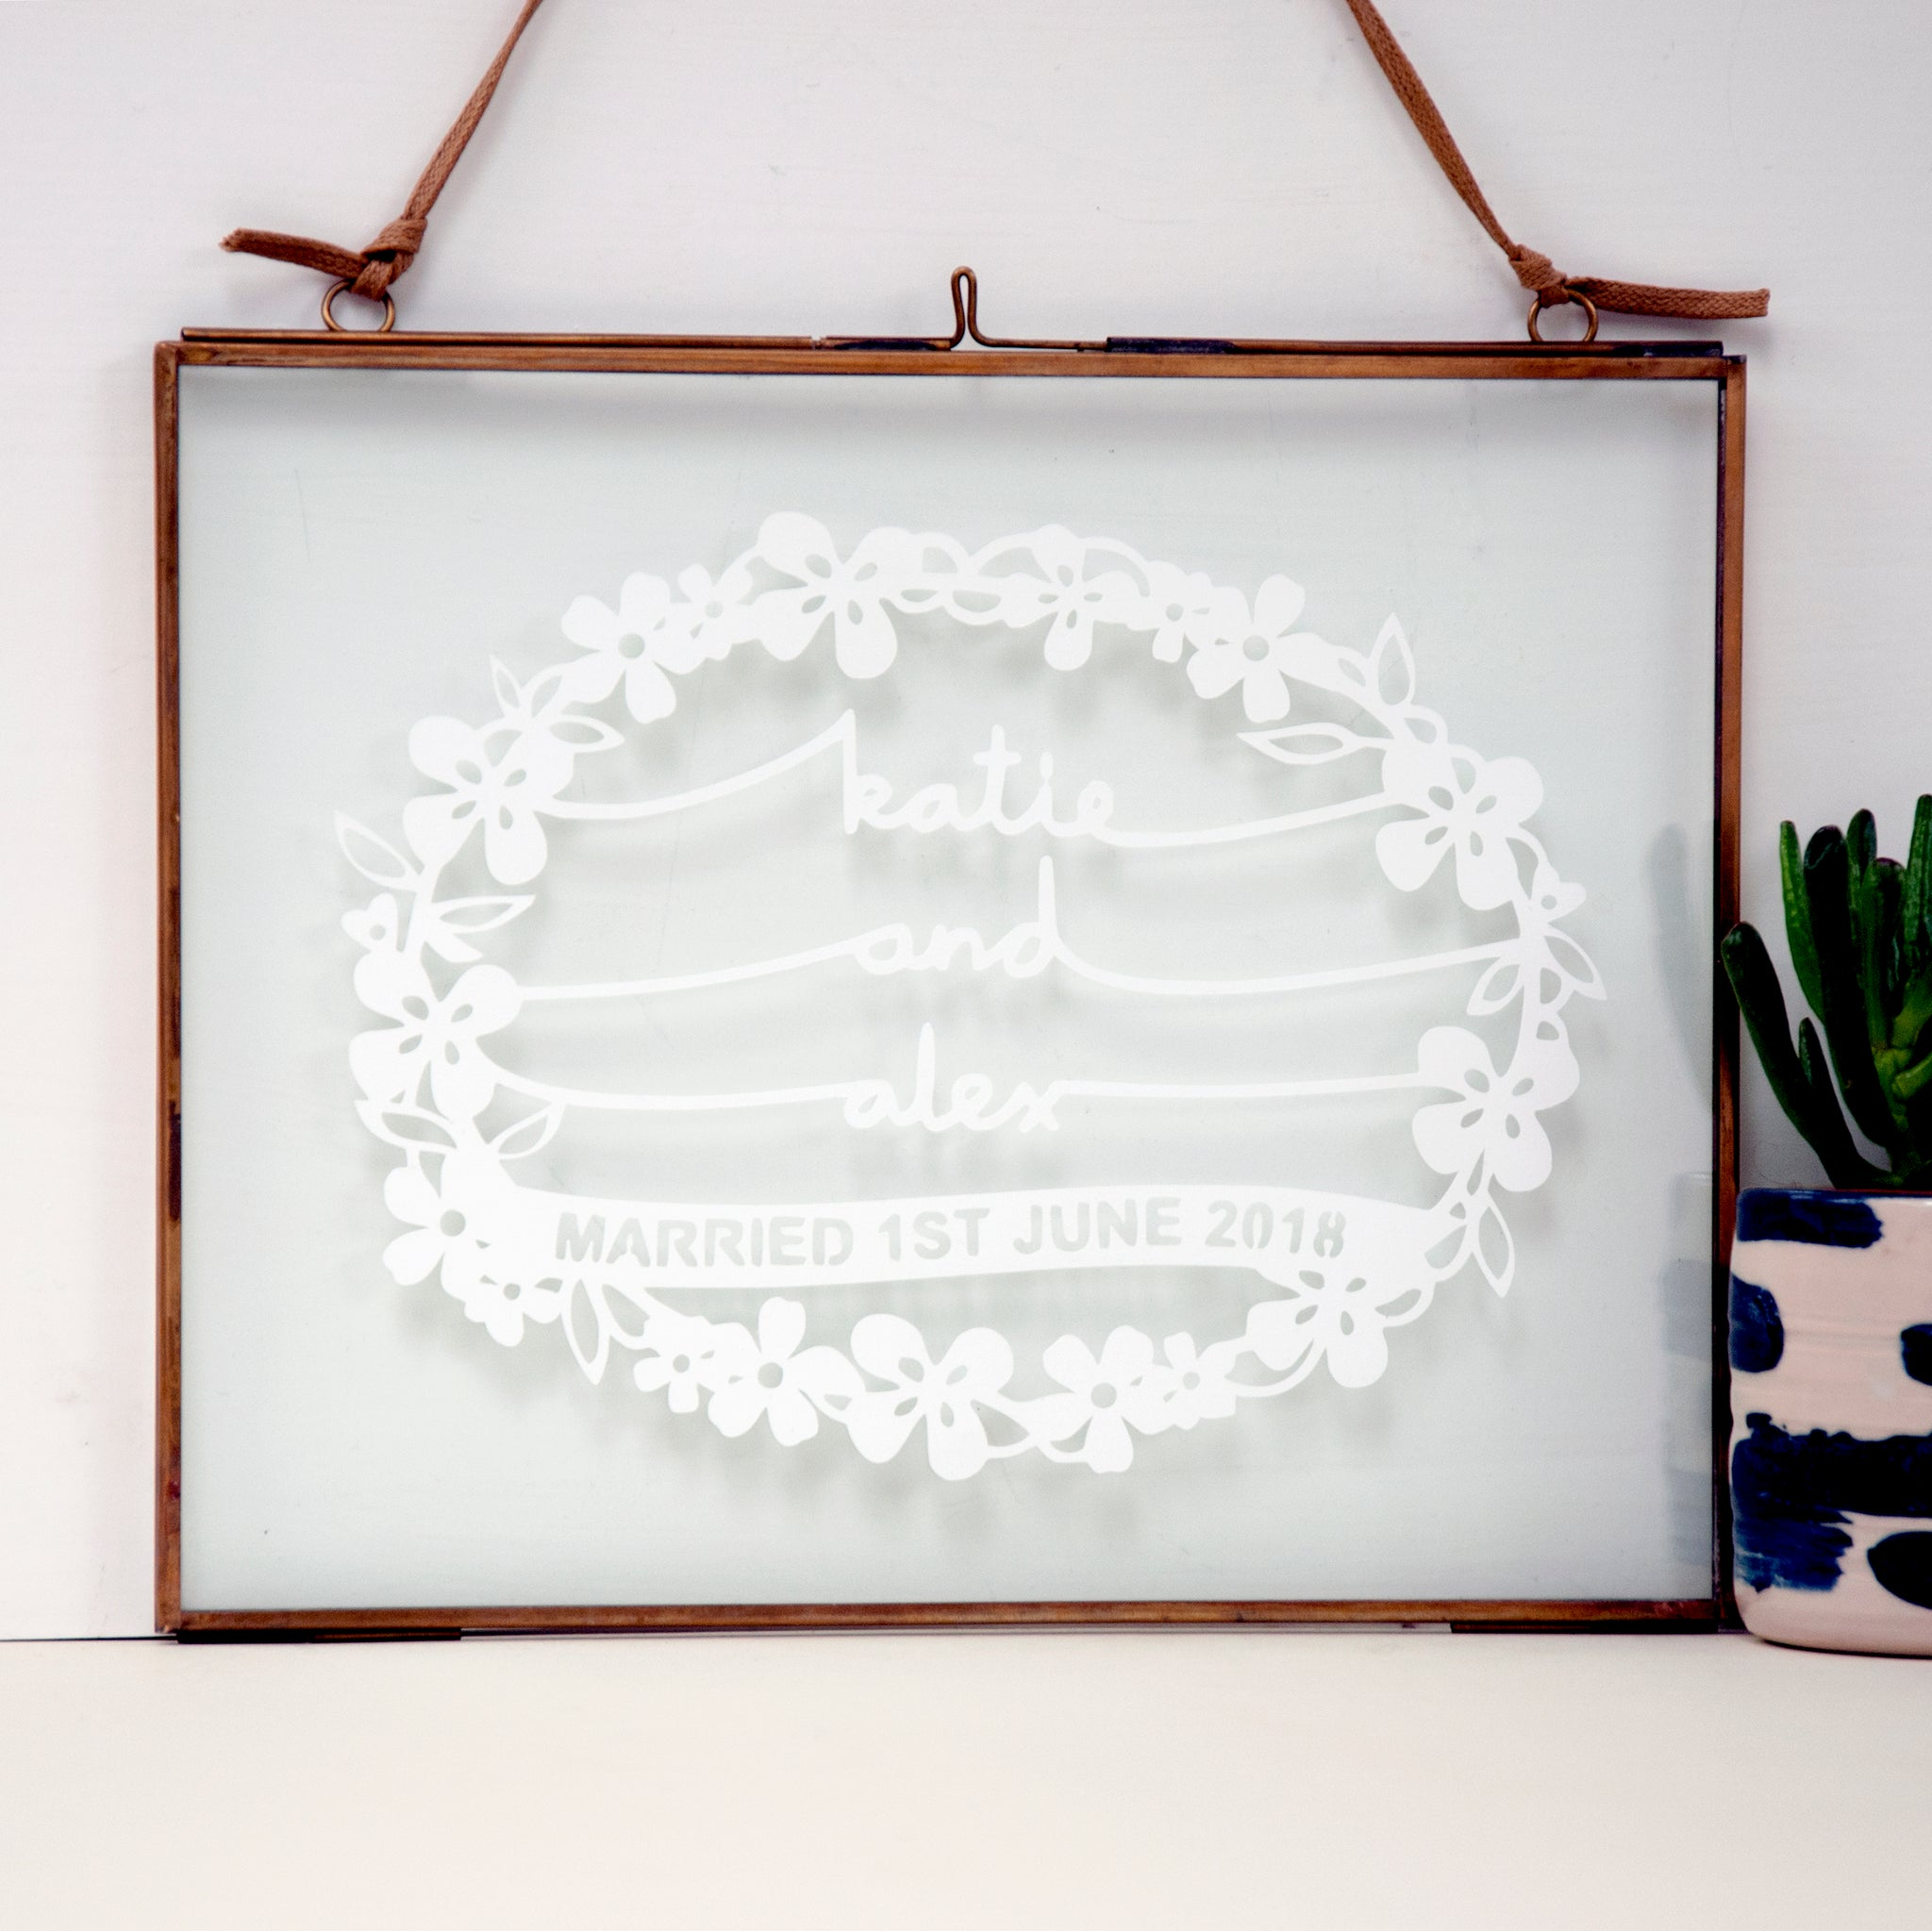 framed wedding gift